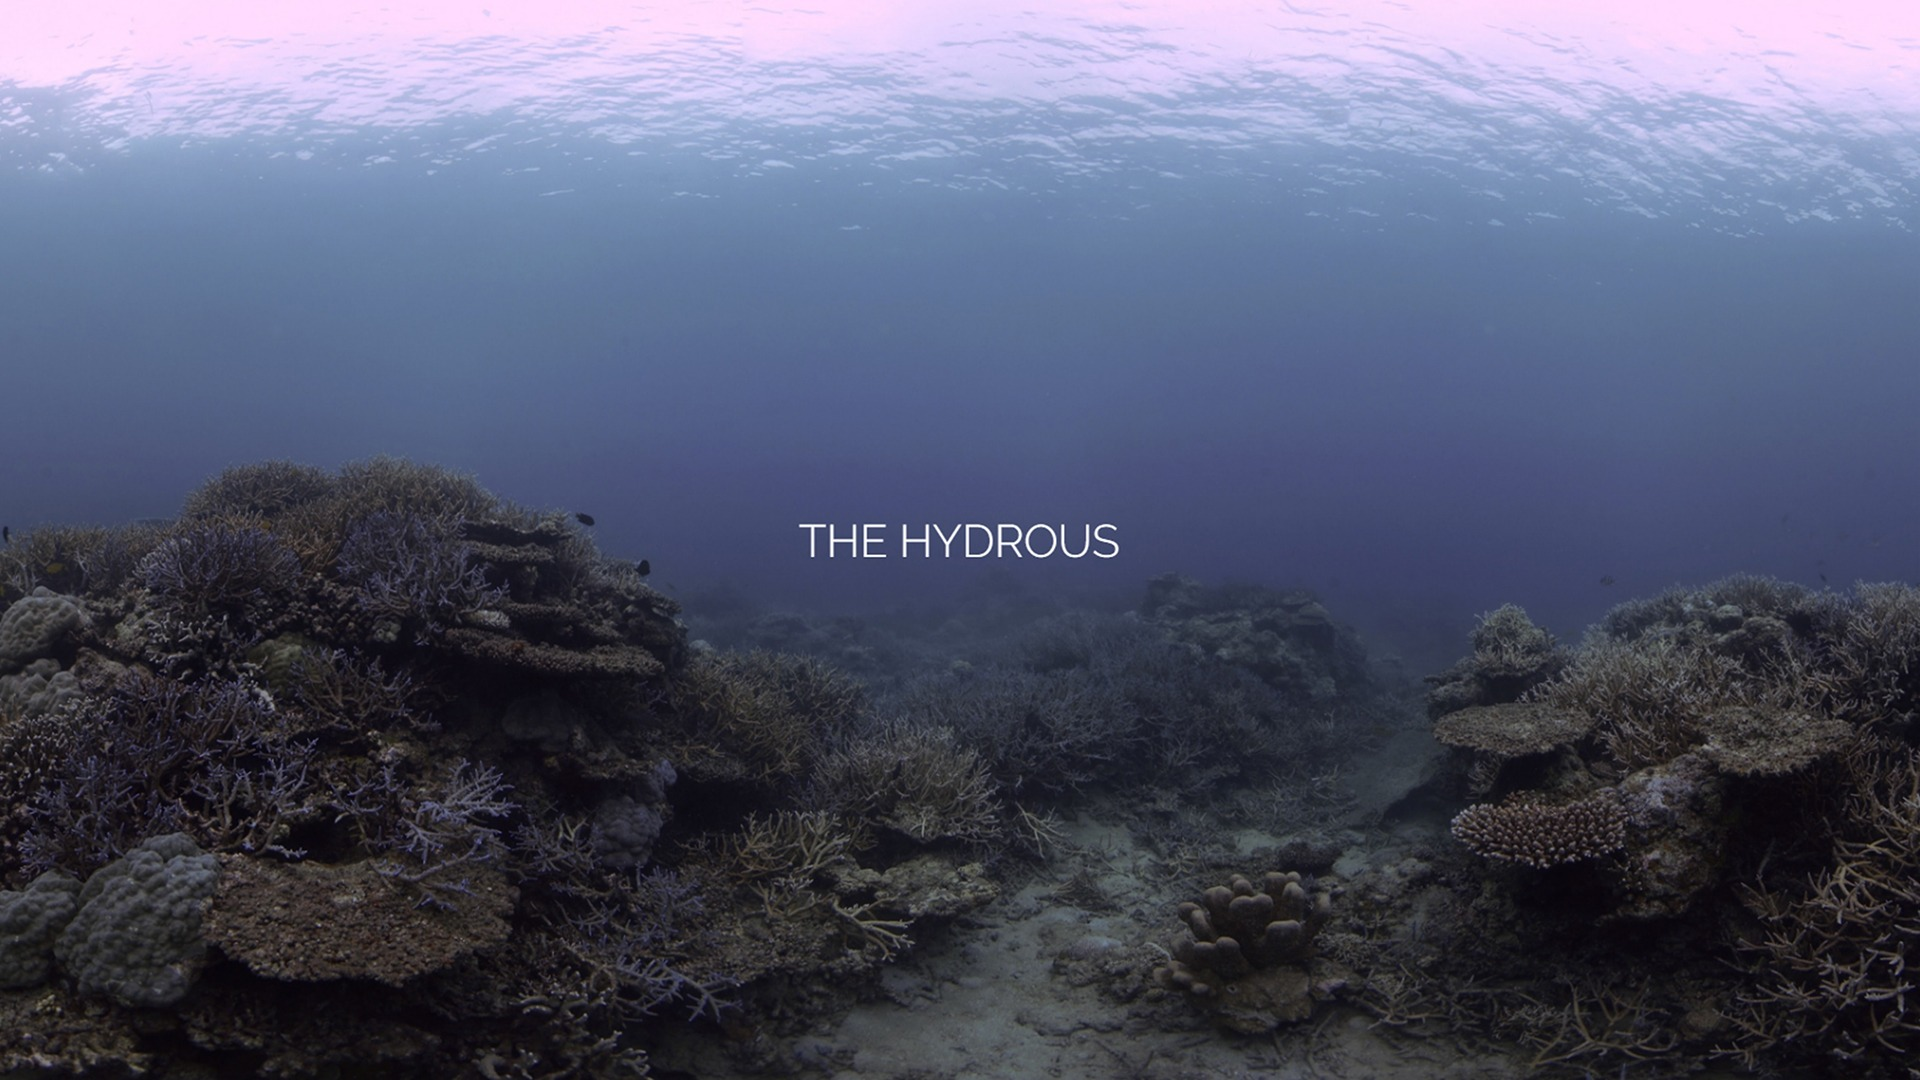 Think | REVOLUTION: How Hydrous Uses Reality Capture and 3D